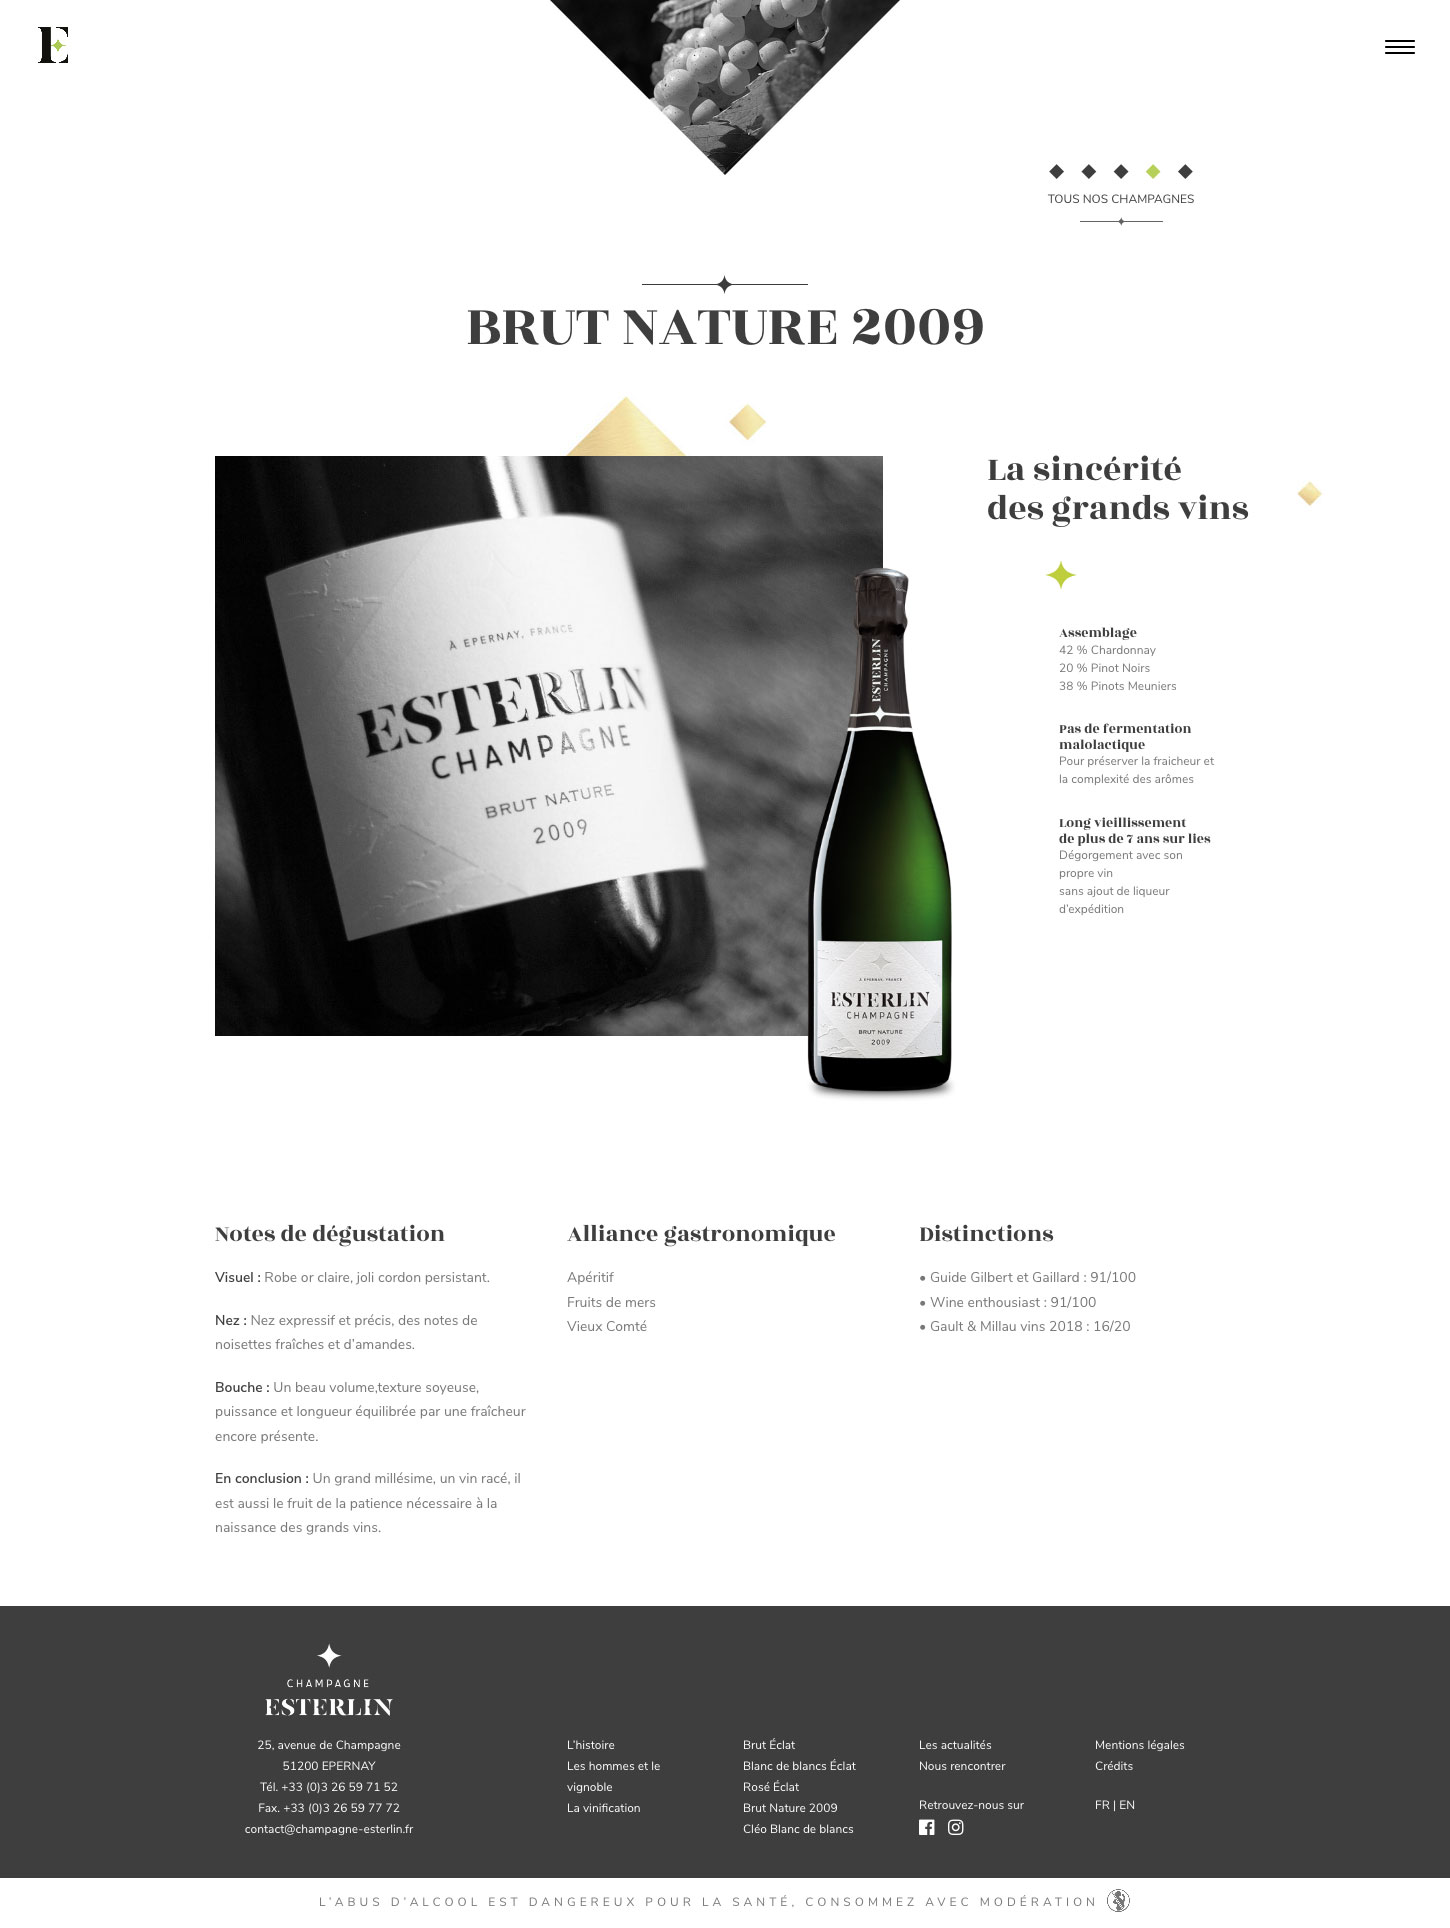 Esterlin Brut Nature 2009 website